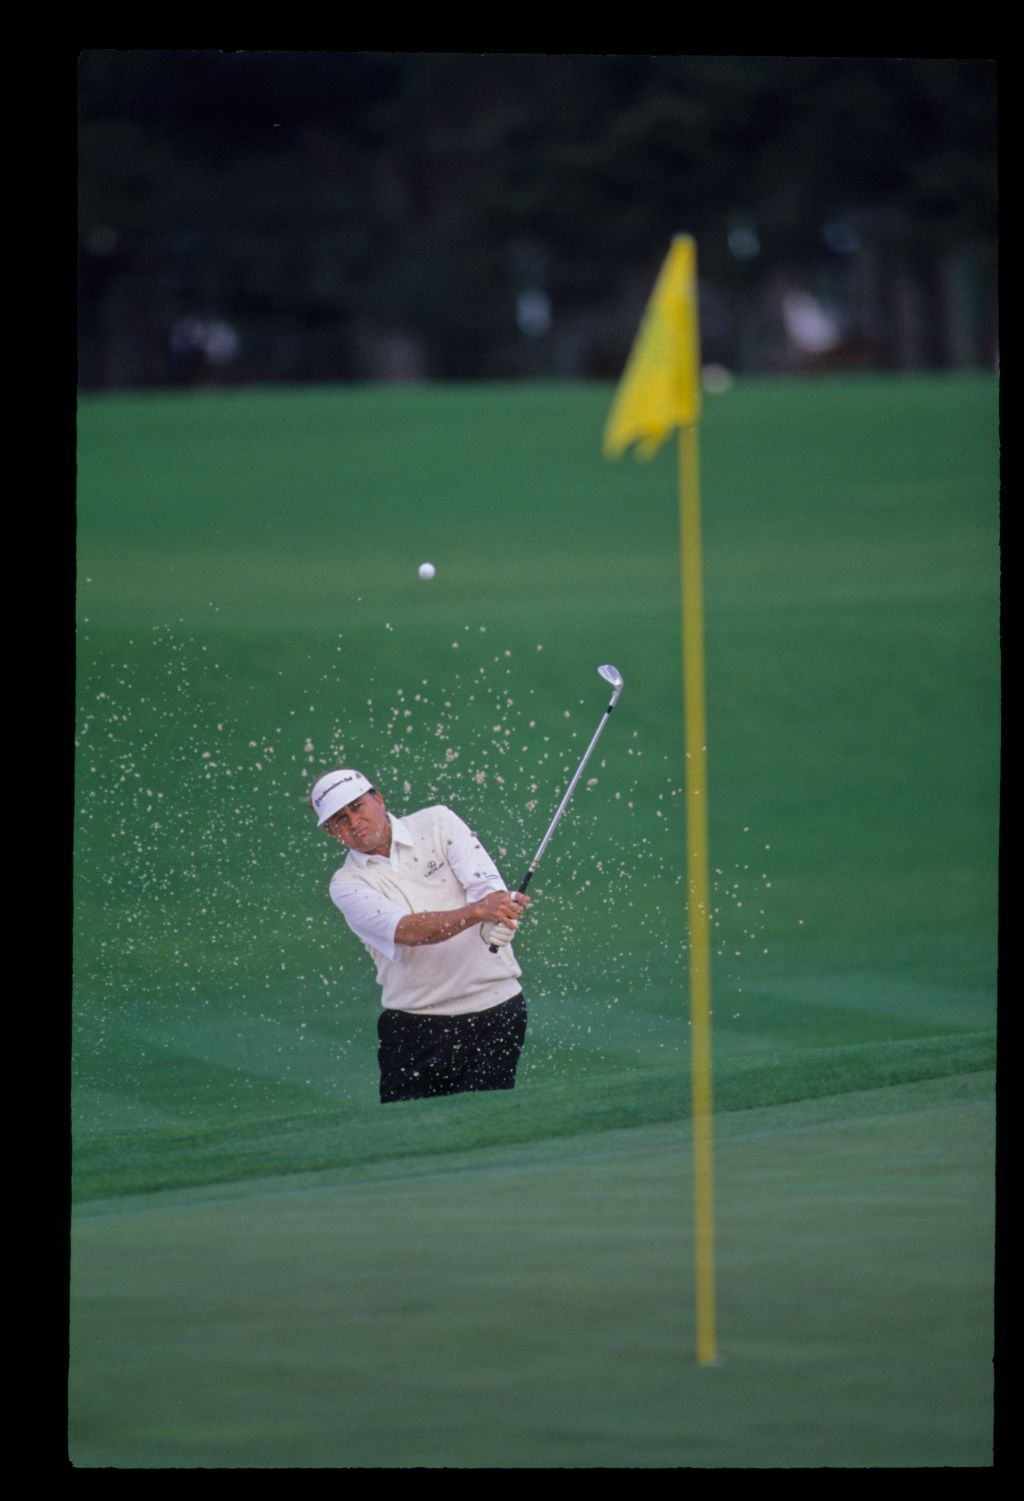 The ball is on its way as Raymond Floyd splashes out of a bunker during the 1992 Masters